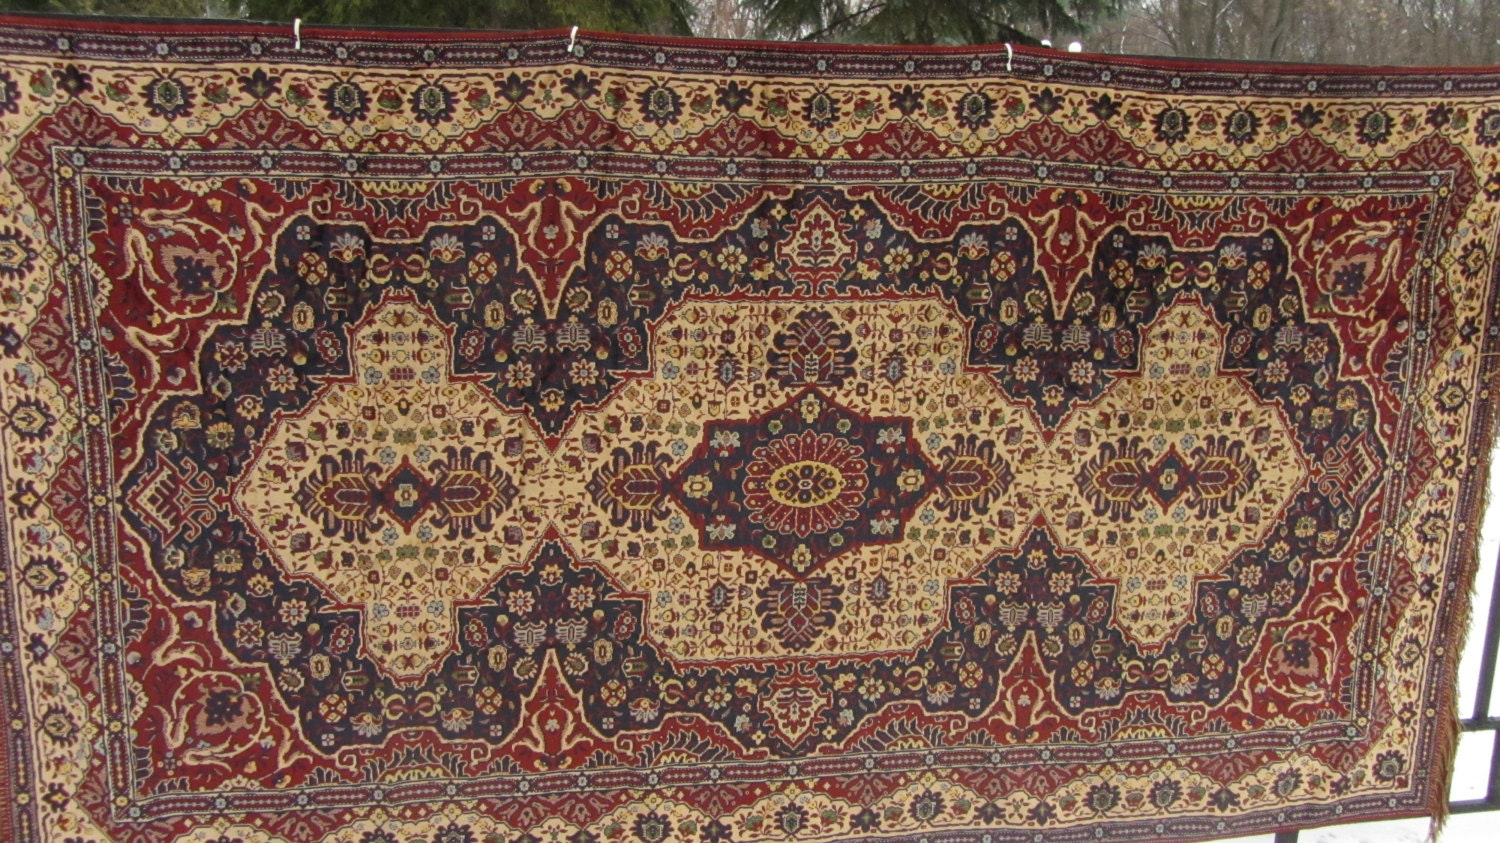 Original Vintage Divandec Carpet from Germany (GDR era),Like New condition. Home